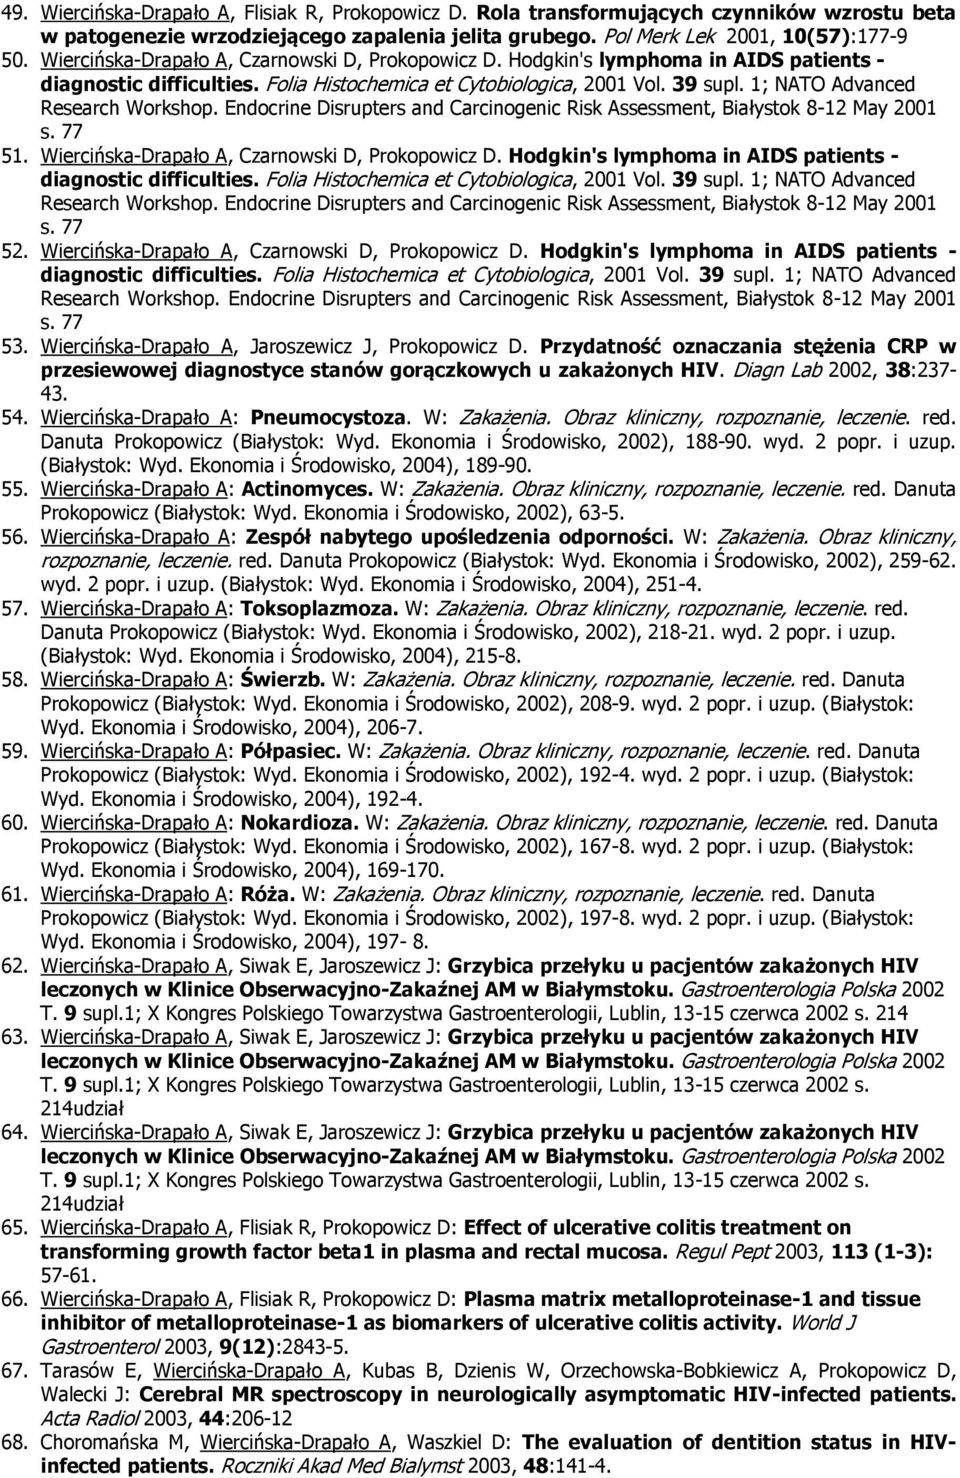 Endcrine Disrupters and Carcingenic Risk Assessment, Białystk 8-12 May 2001 s. 77 51.  Endcrine Disrupters and Carcingenic Risk Assessment, Białystk 8-12 May 2001 s. 77 52.